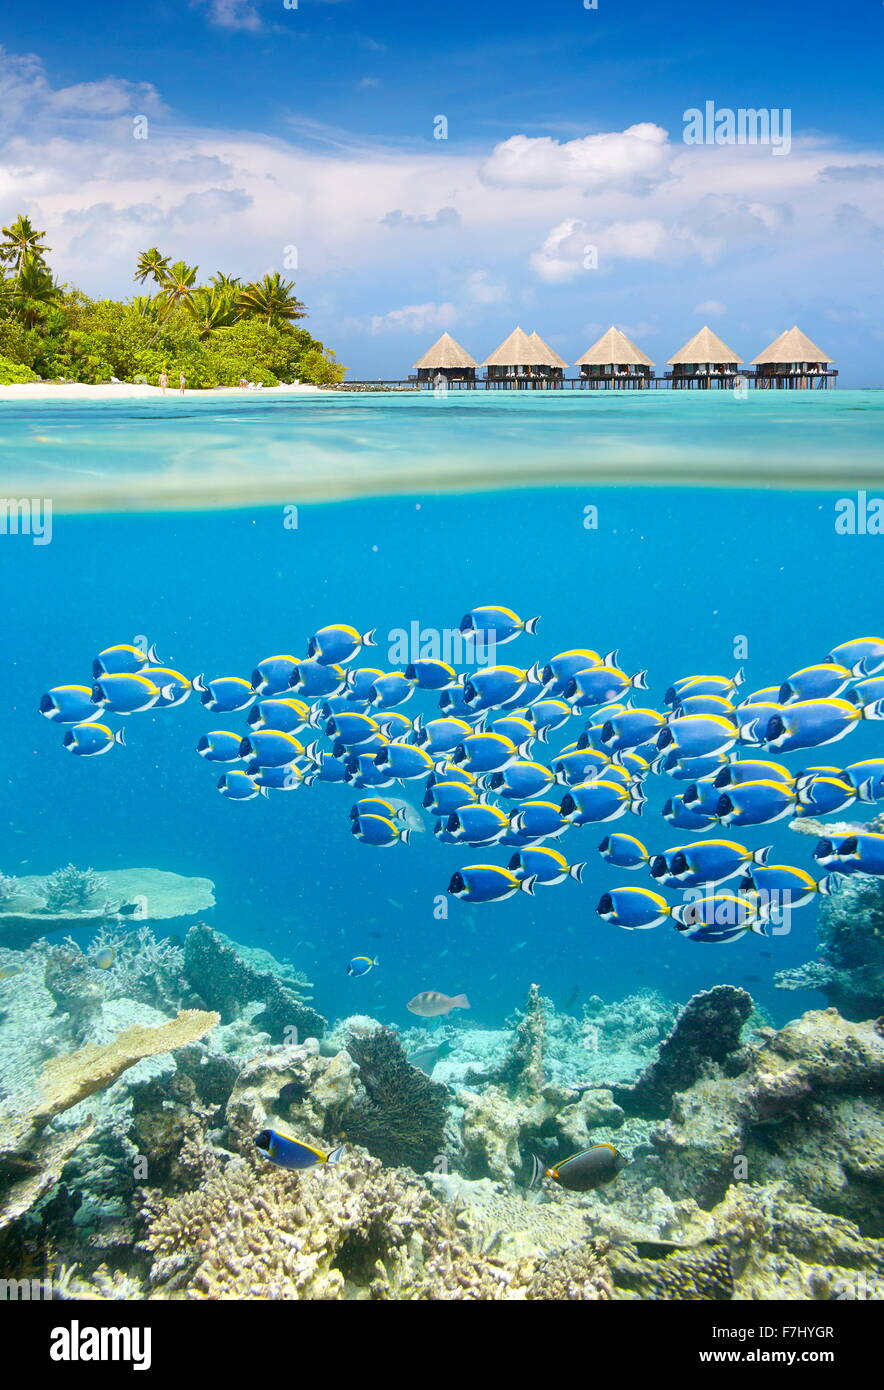 Maldives Island - tropical underwater view with shoal of fish - Stock Image